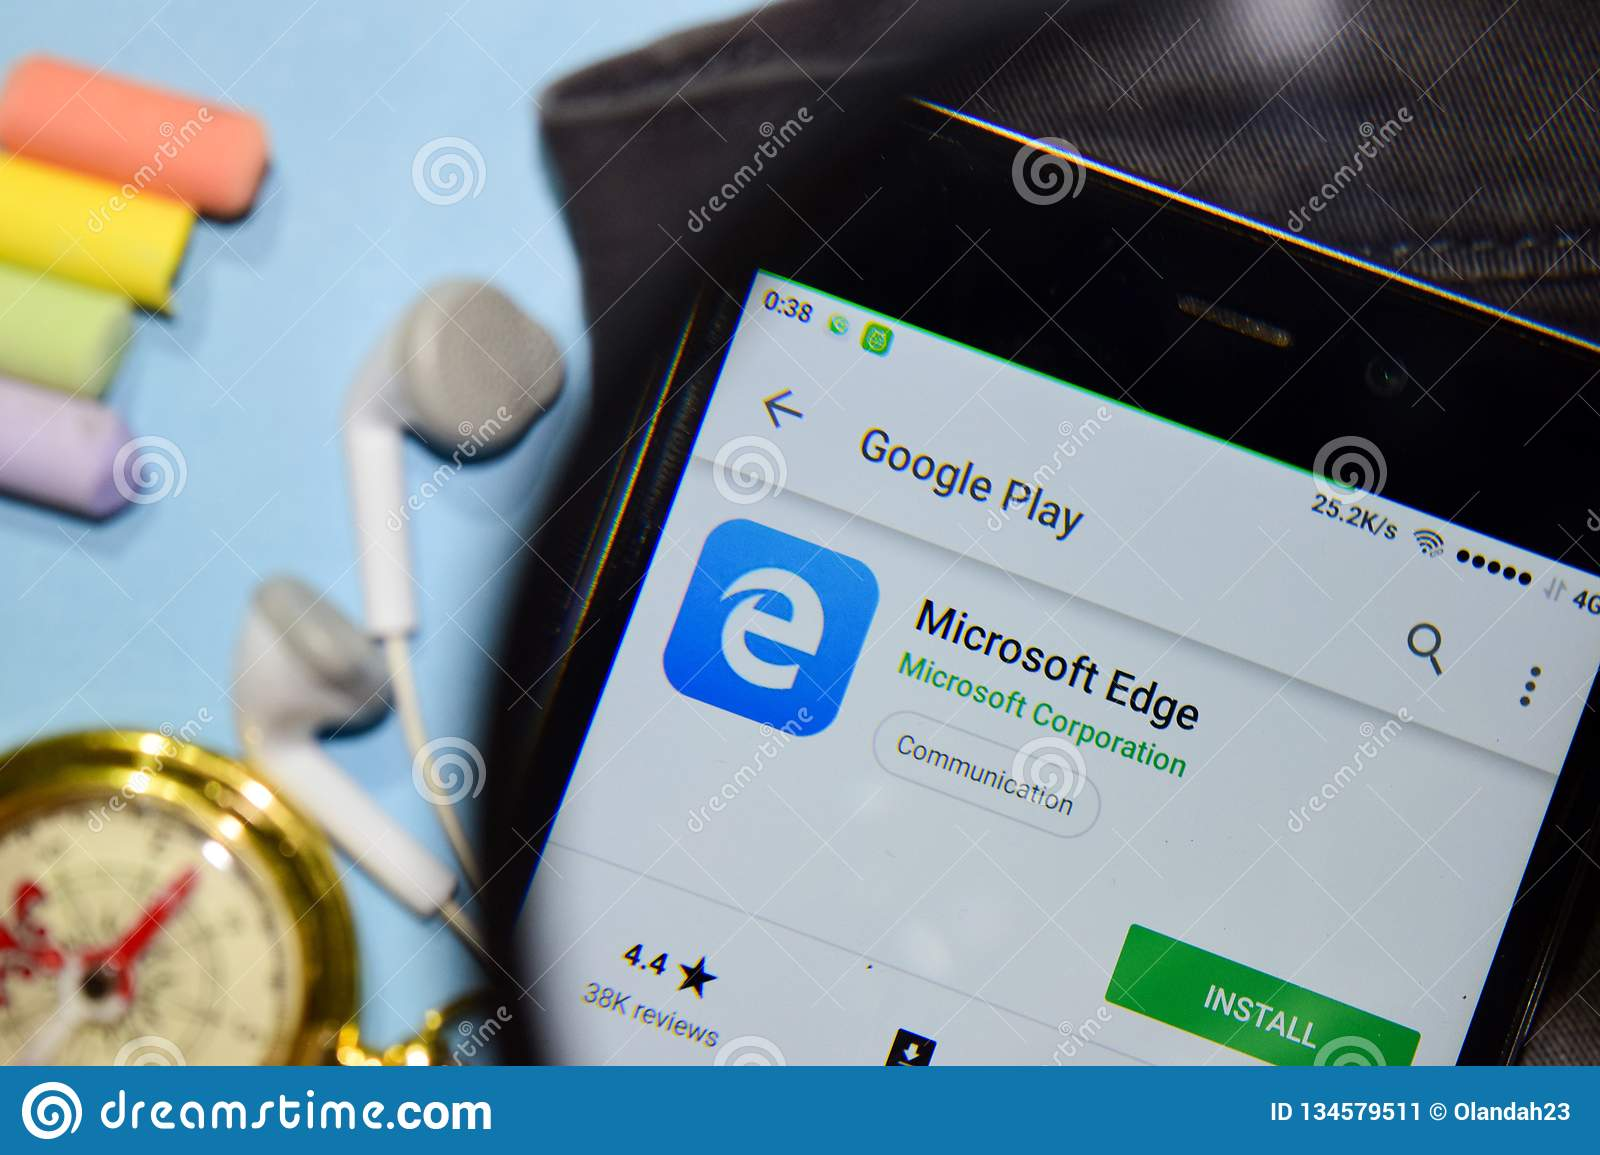 Microsoft Edge Dev App With Magnifying On Smartphone Screen